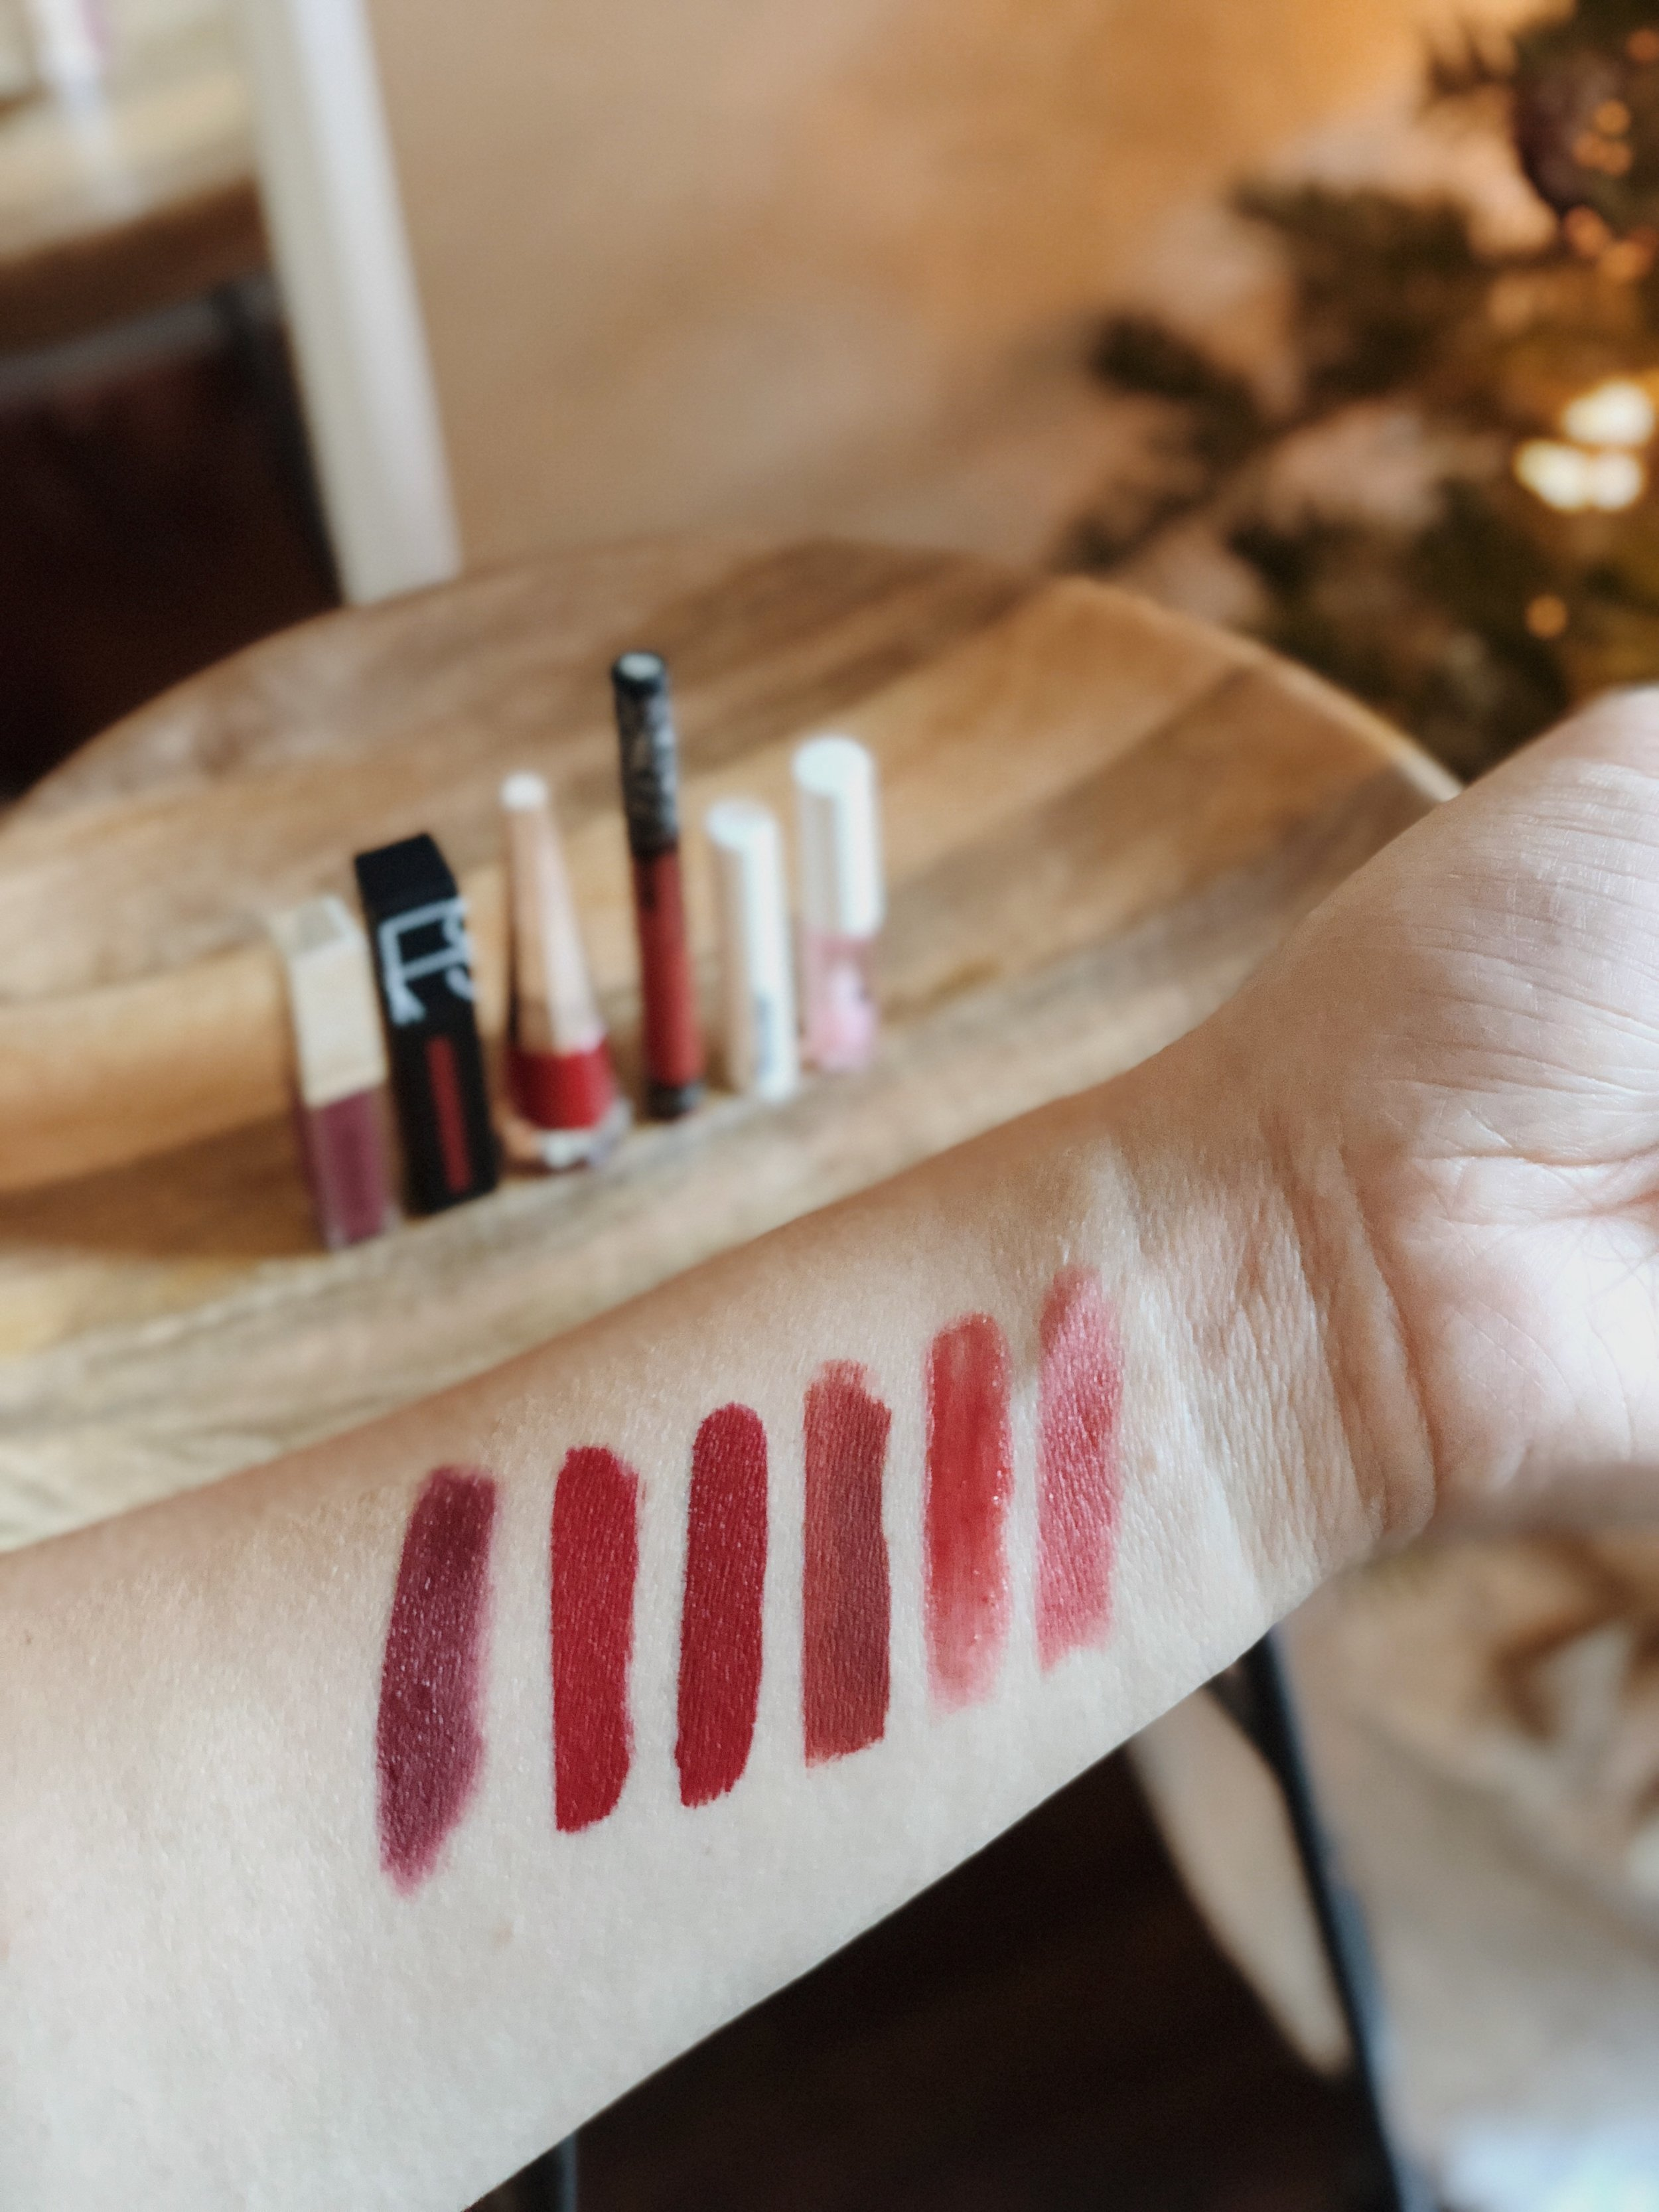 Holiday Red Lipstick Options Swatches - Burberry, NARS, Kat Von D, Glossier